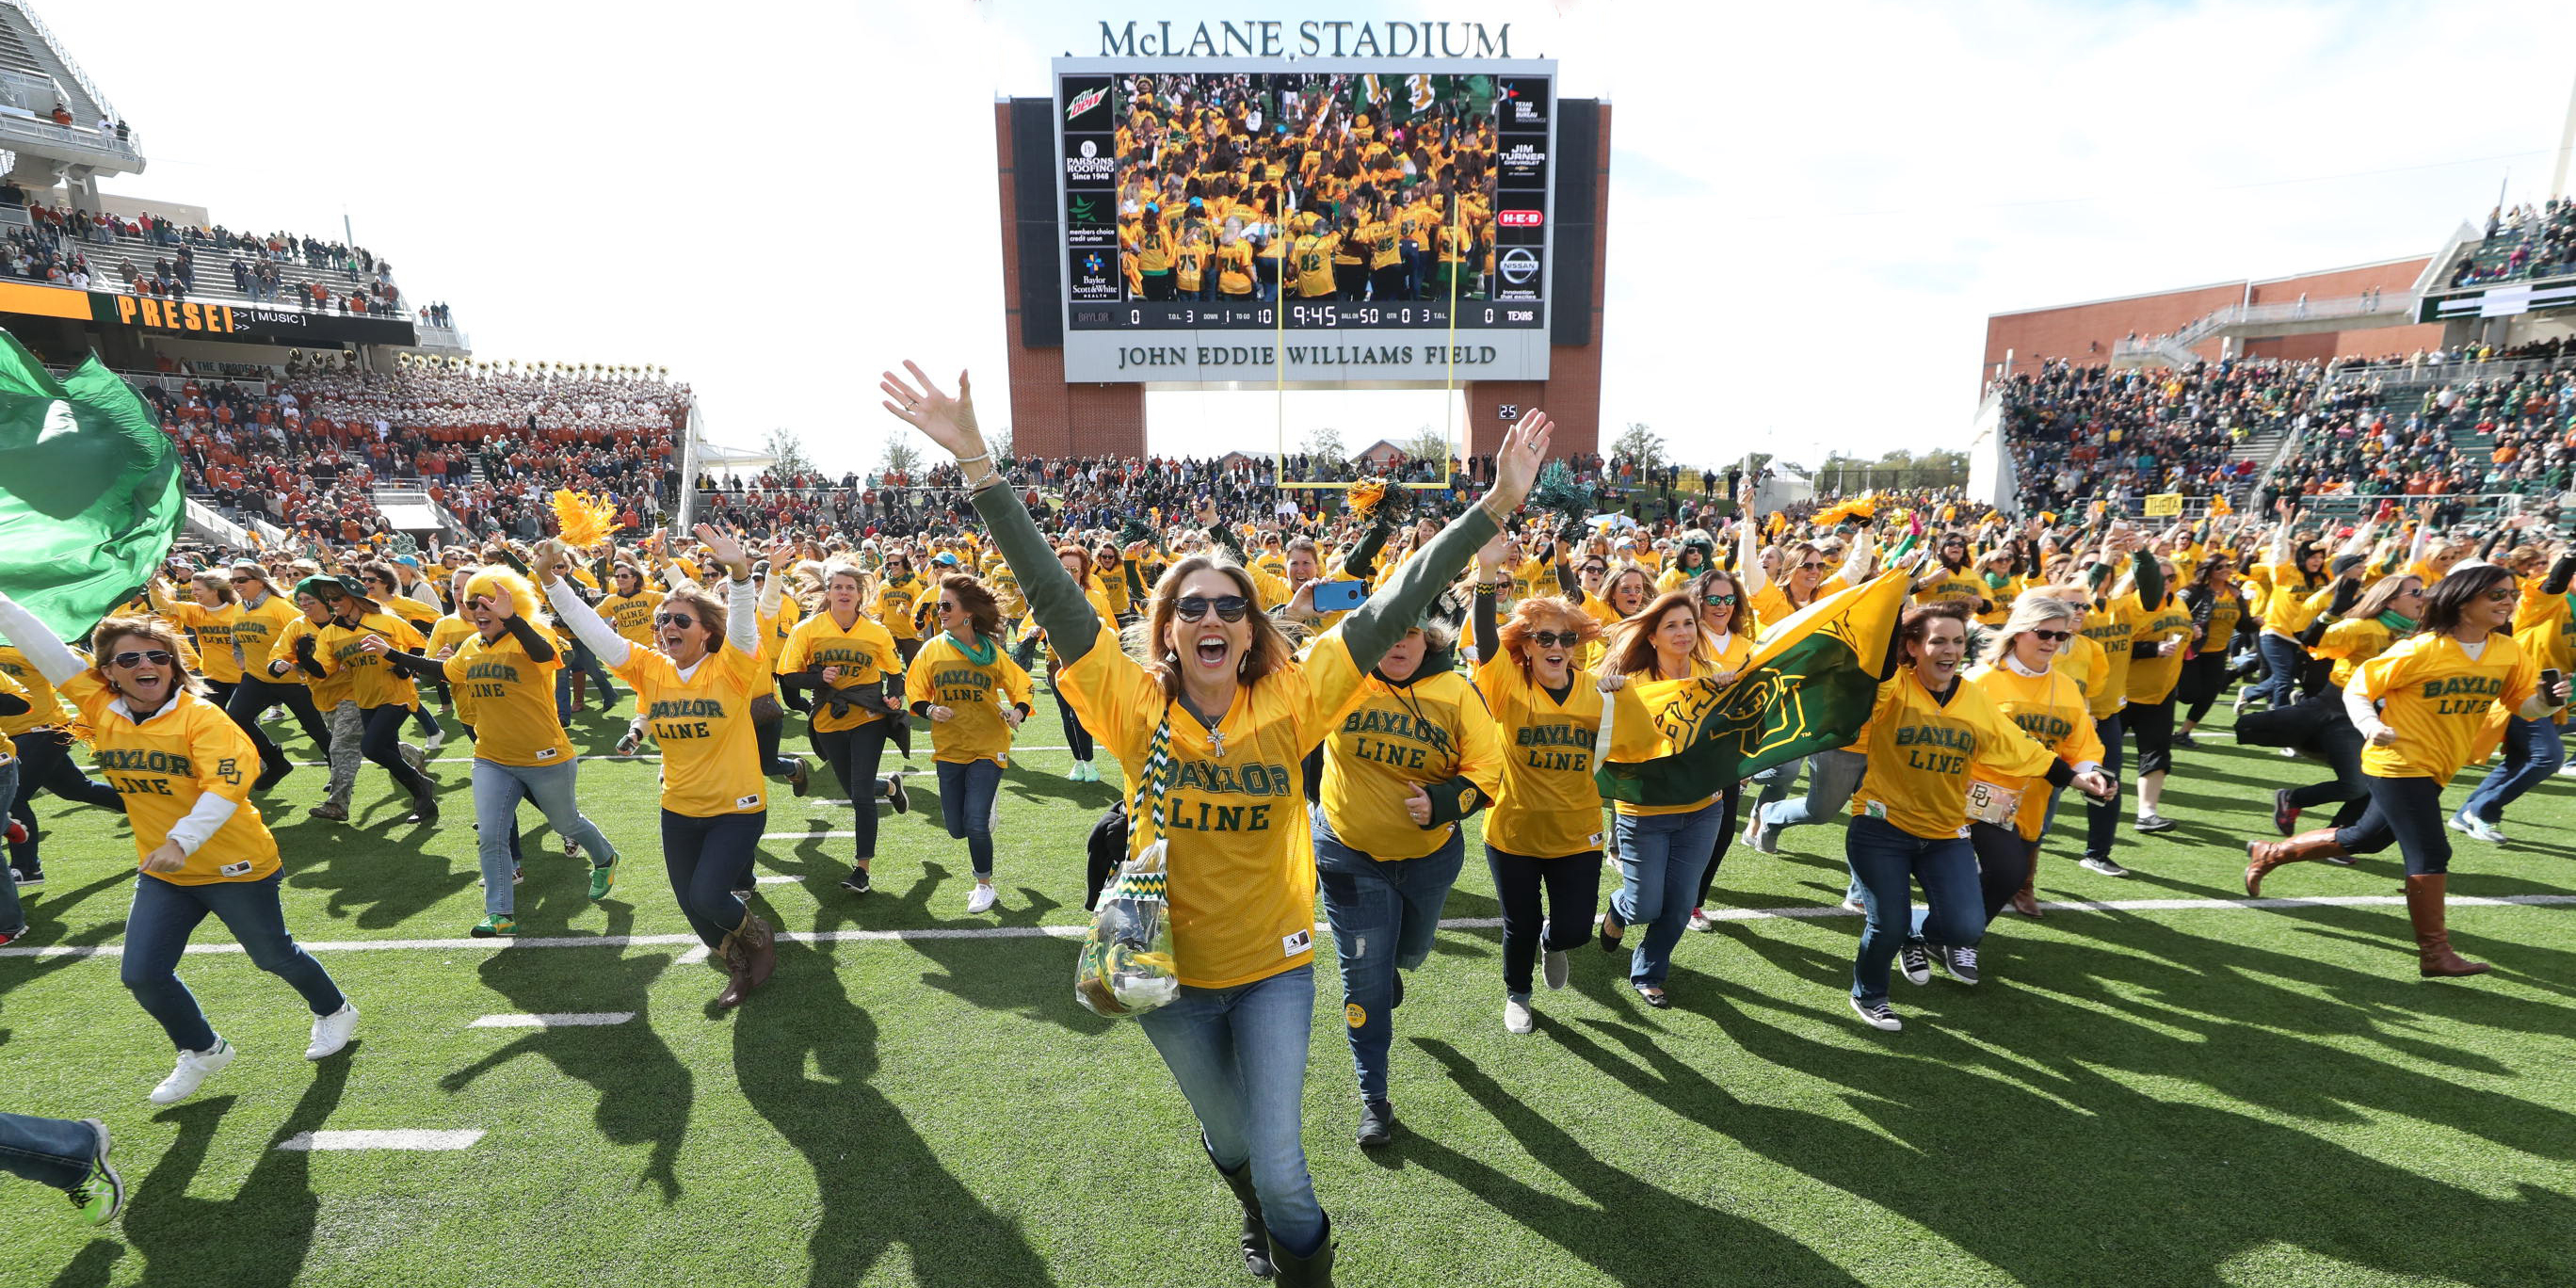 When the Baylor Line was founded back in 1970, it was a spirit organization  for first-year men, who formed a human tunnel on the field at Floyd Casey